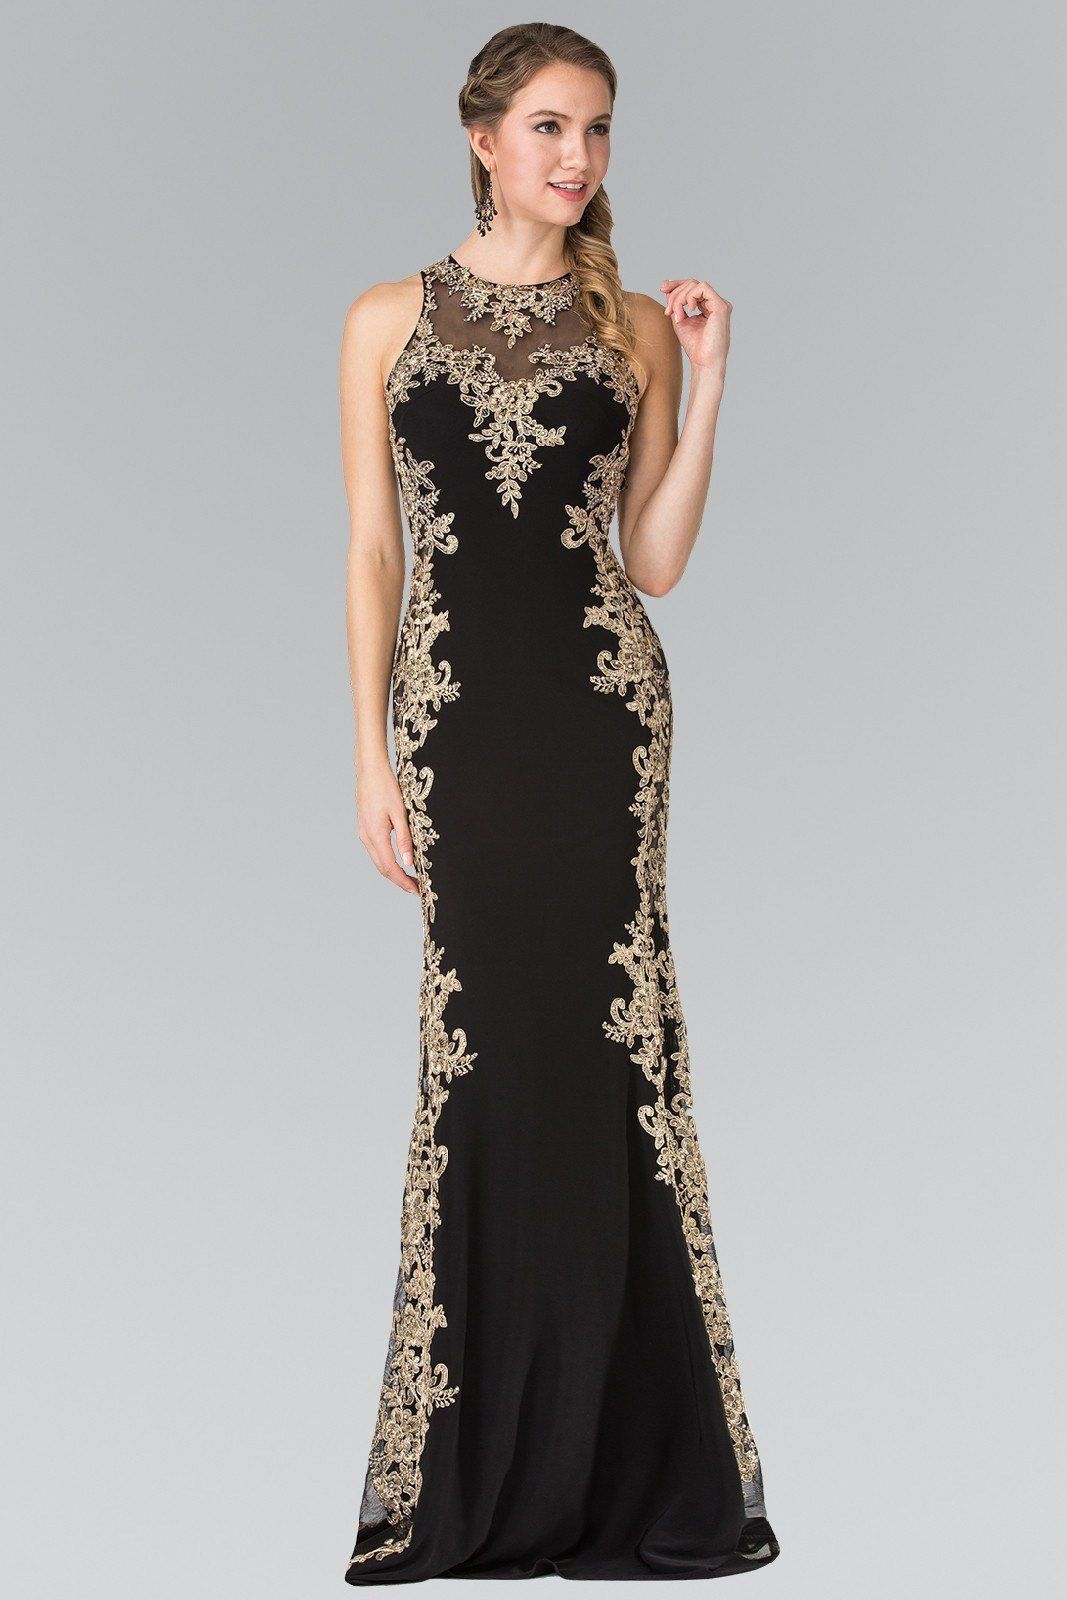 093b0c136759 Trendy plus size prom dress & evening gown with gold lace accents. A long  fitted formal dress perfect for prom, gala or as a black tie evening dress.